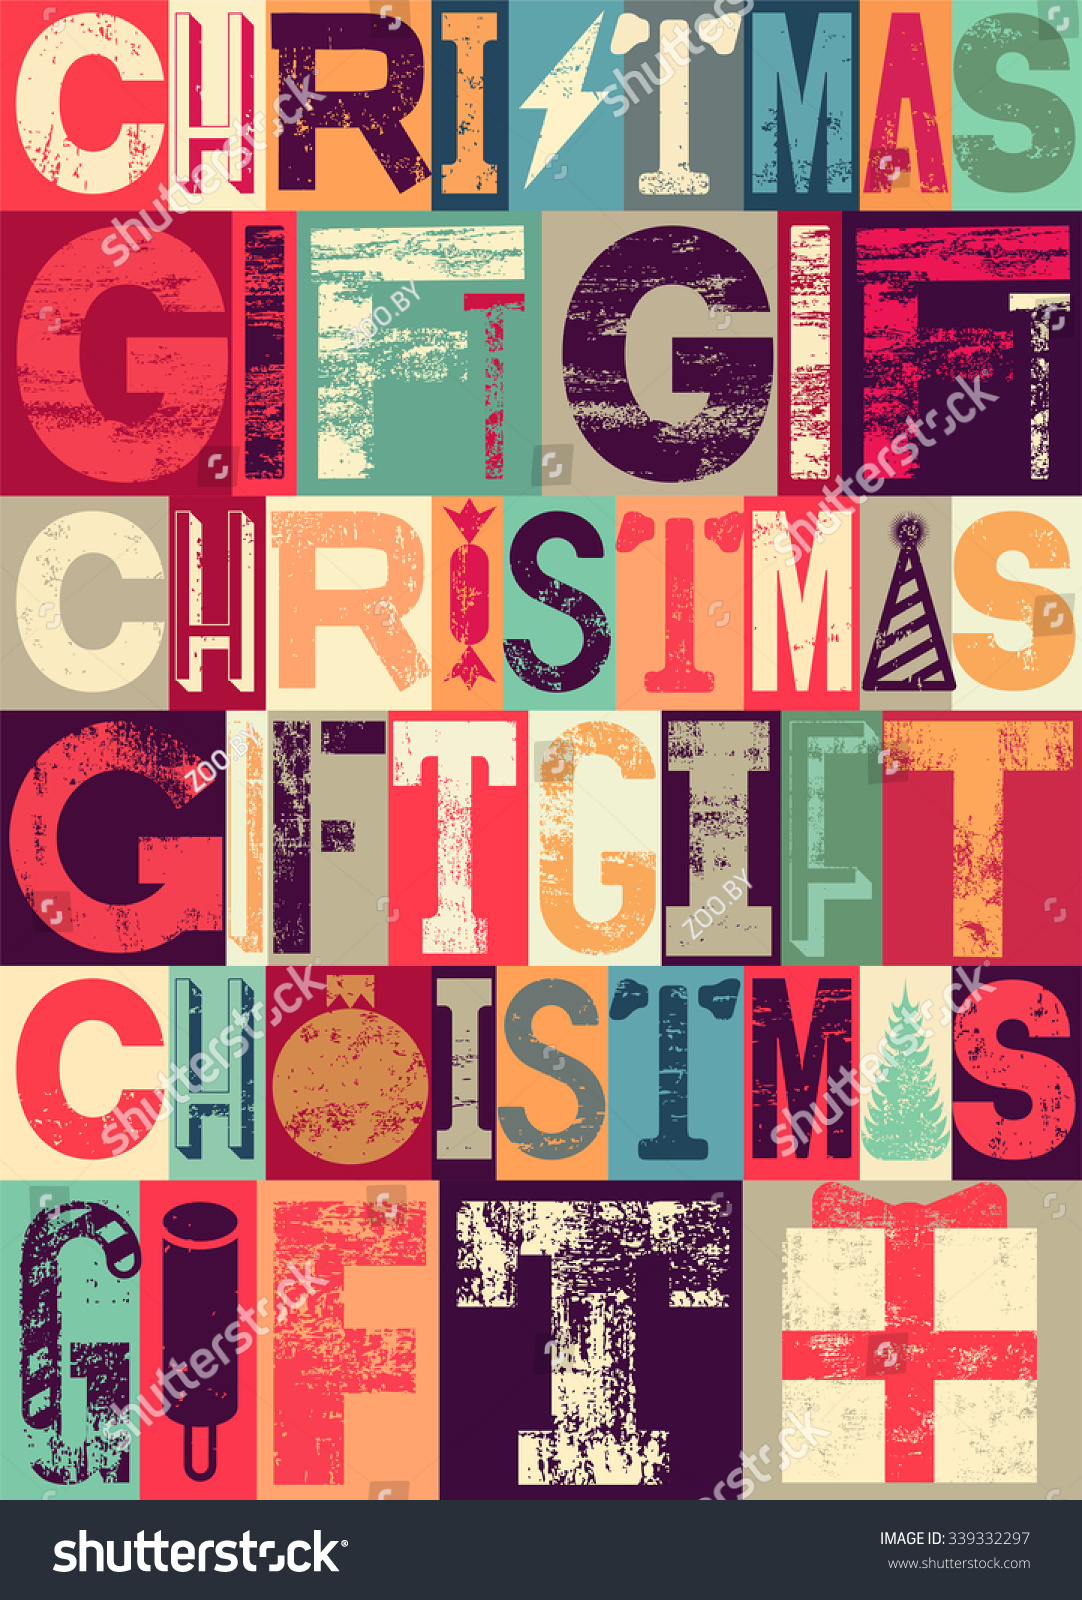 Typographical vintage christmas gift poster design retro